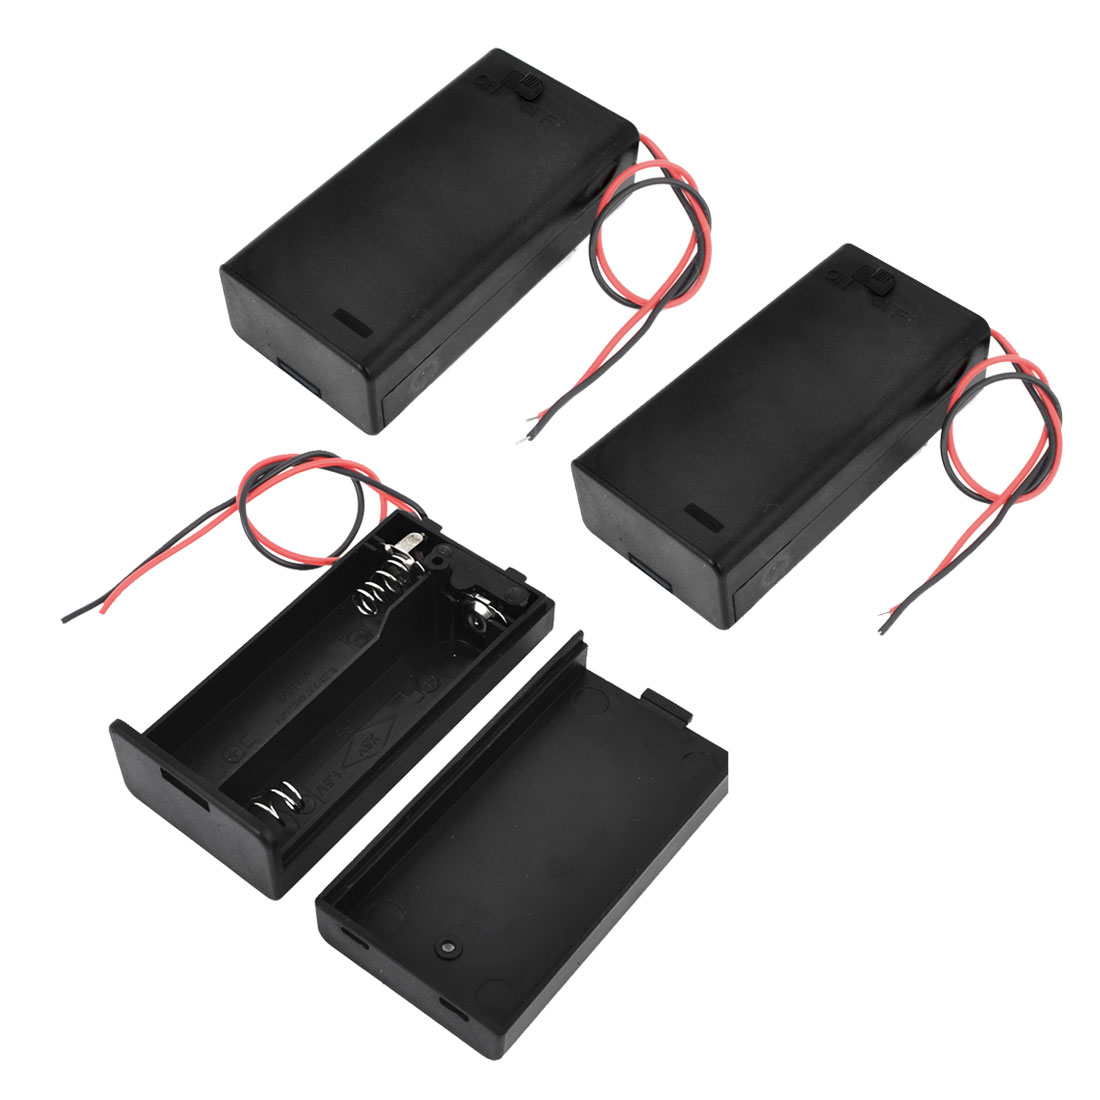 3 Pcs Two Wire Leads Spring Clip Battery Box Holder for 2x1.5V AA Batteries w Cap On/Off Switch